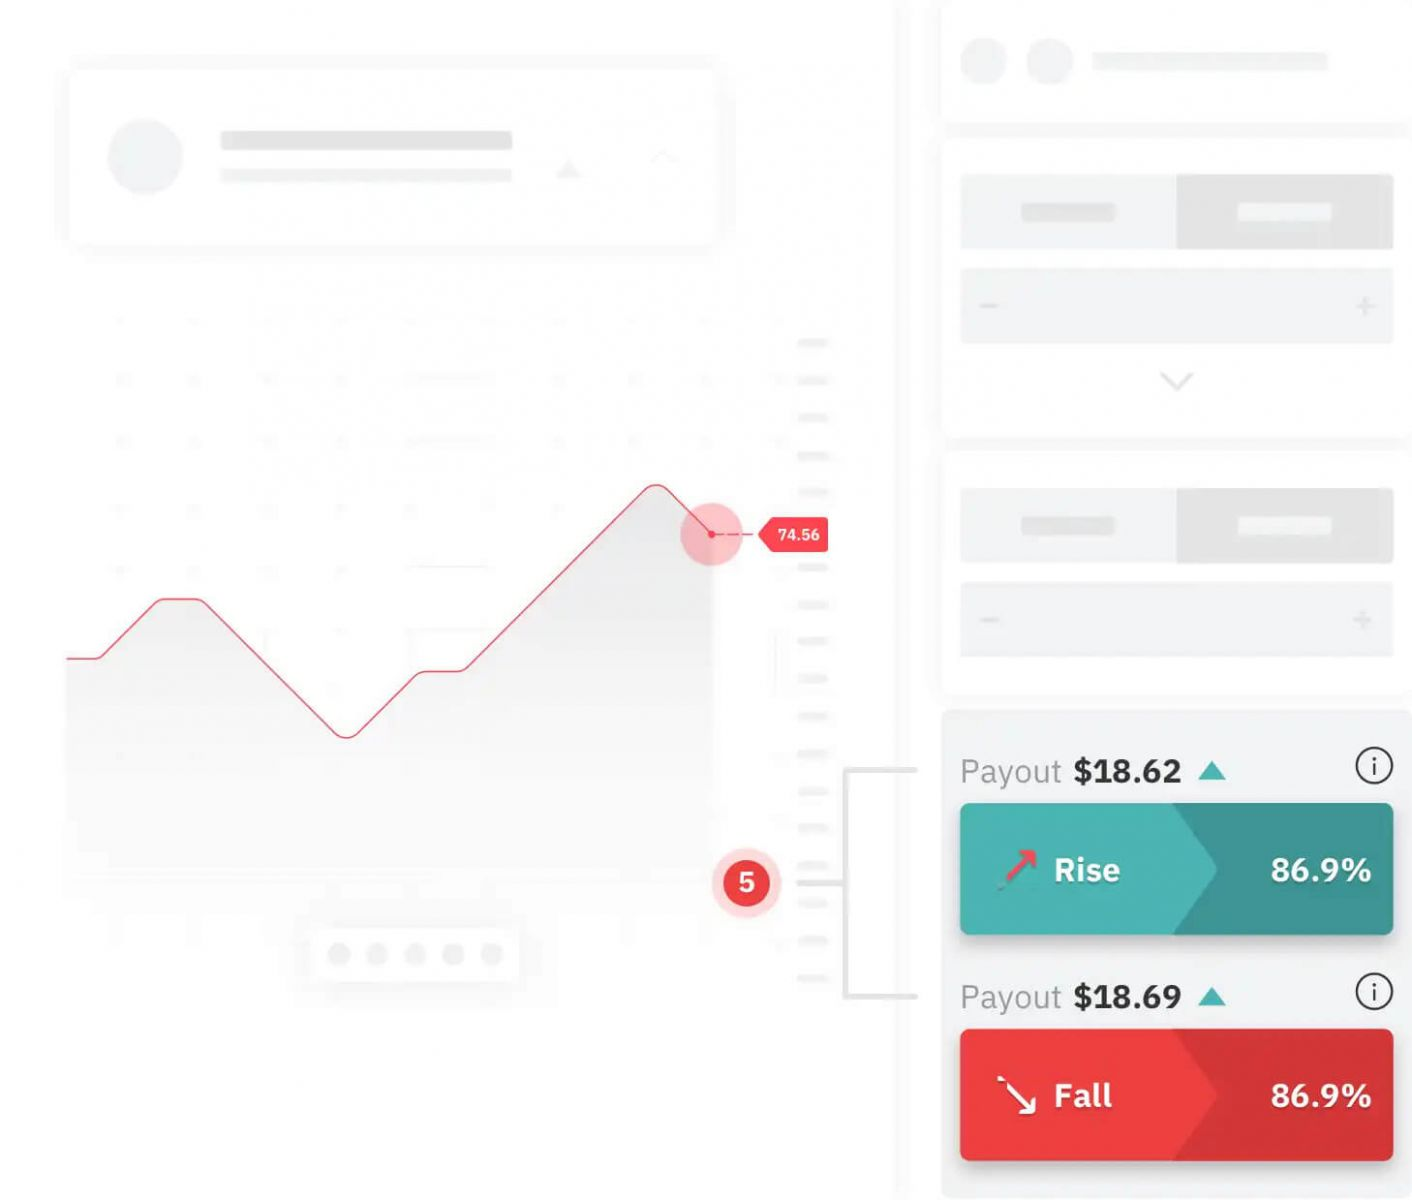 How to Trade Binary Options in Deriv